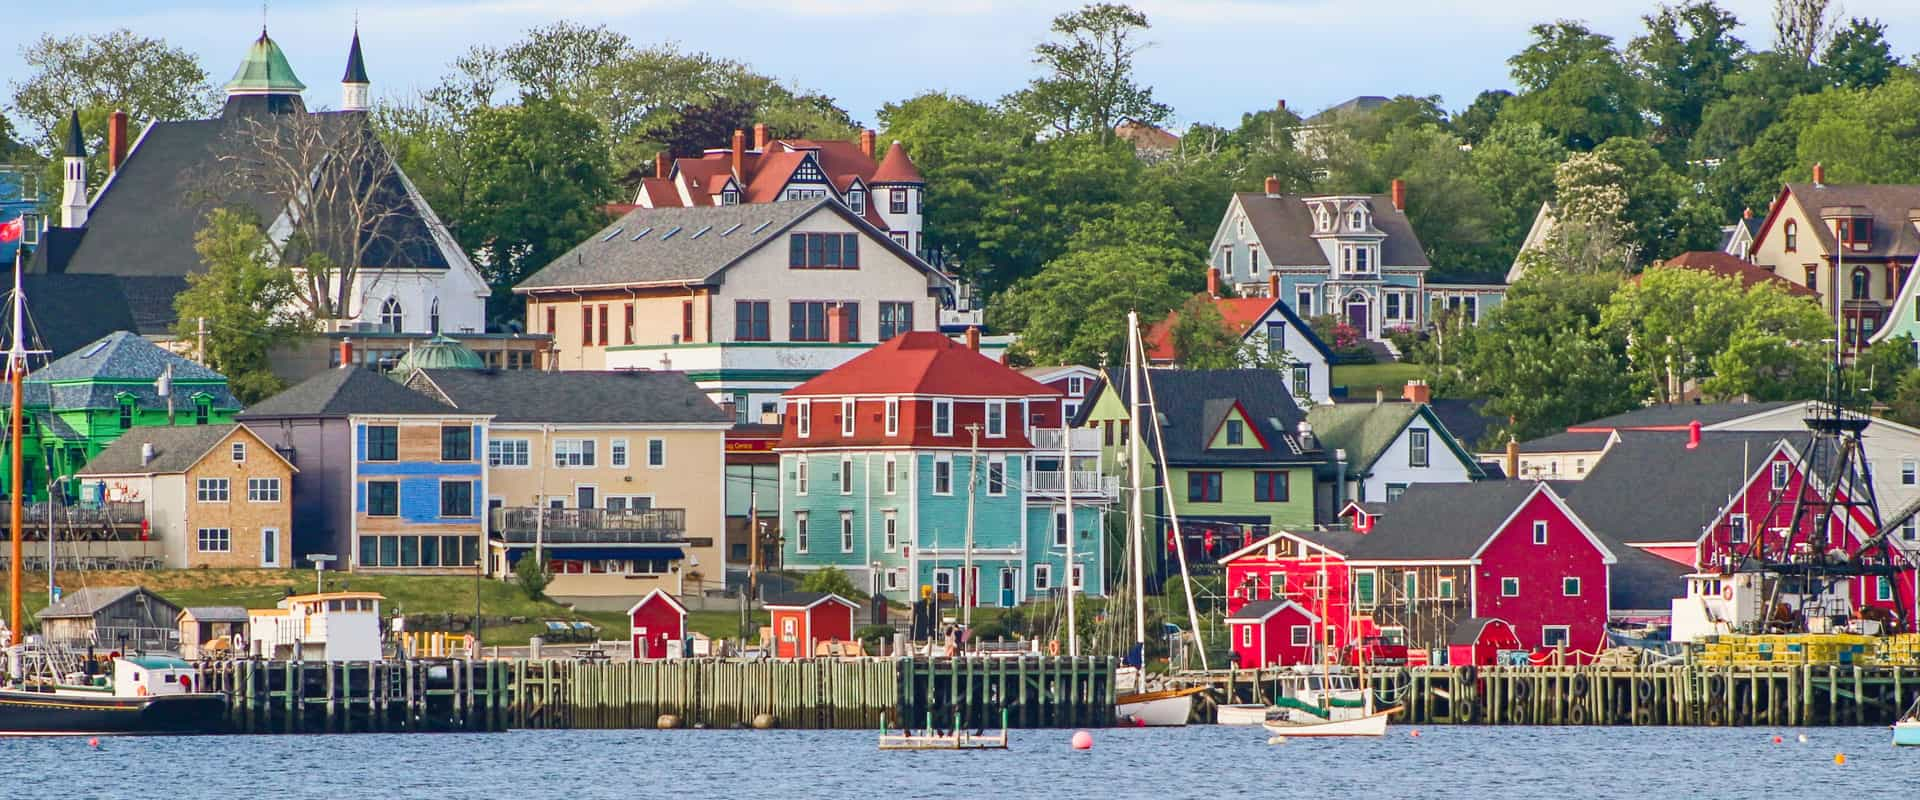 Photo of Lunenburg Nova Scotia